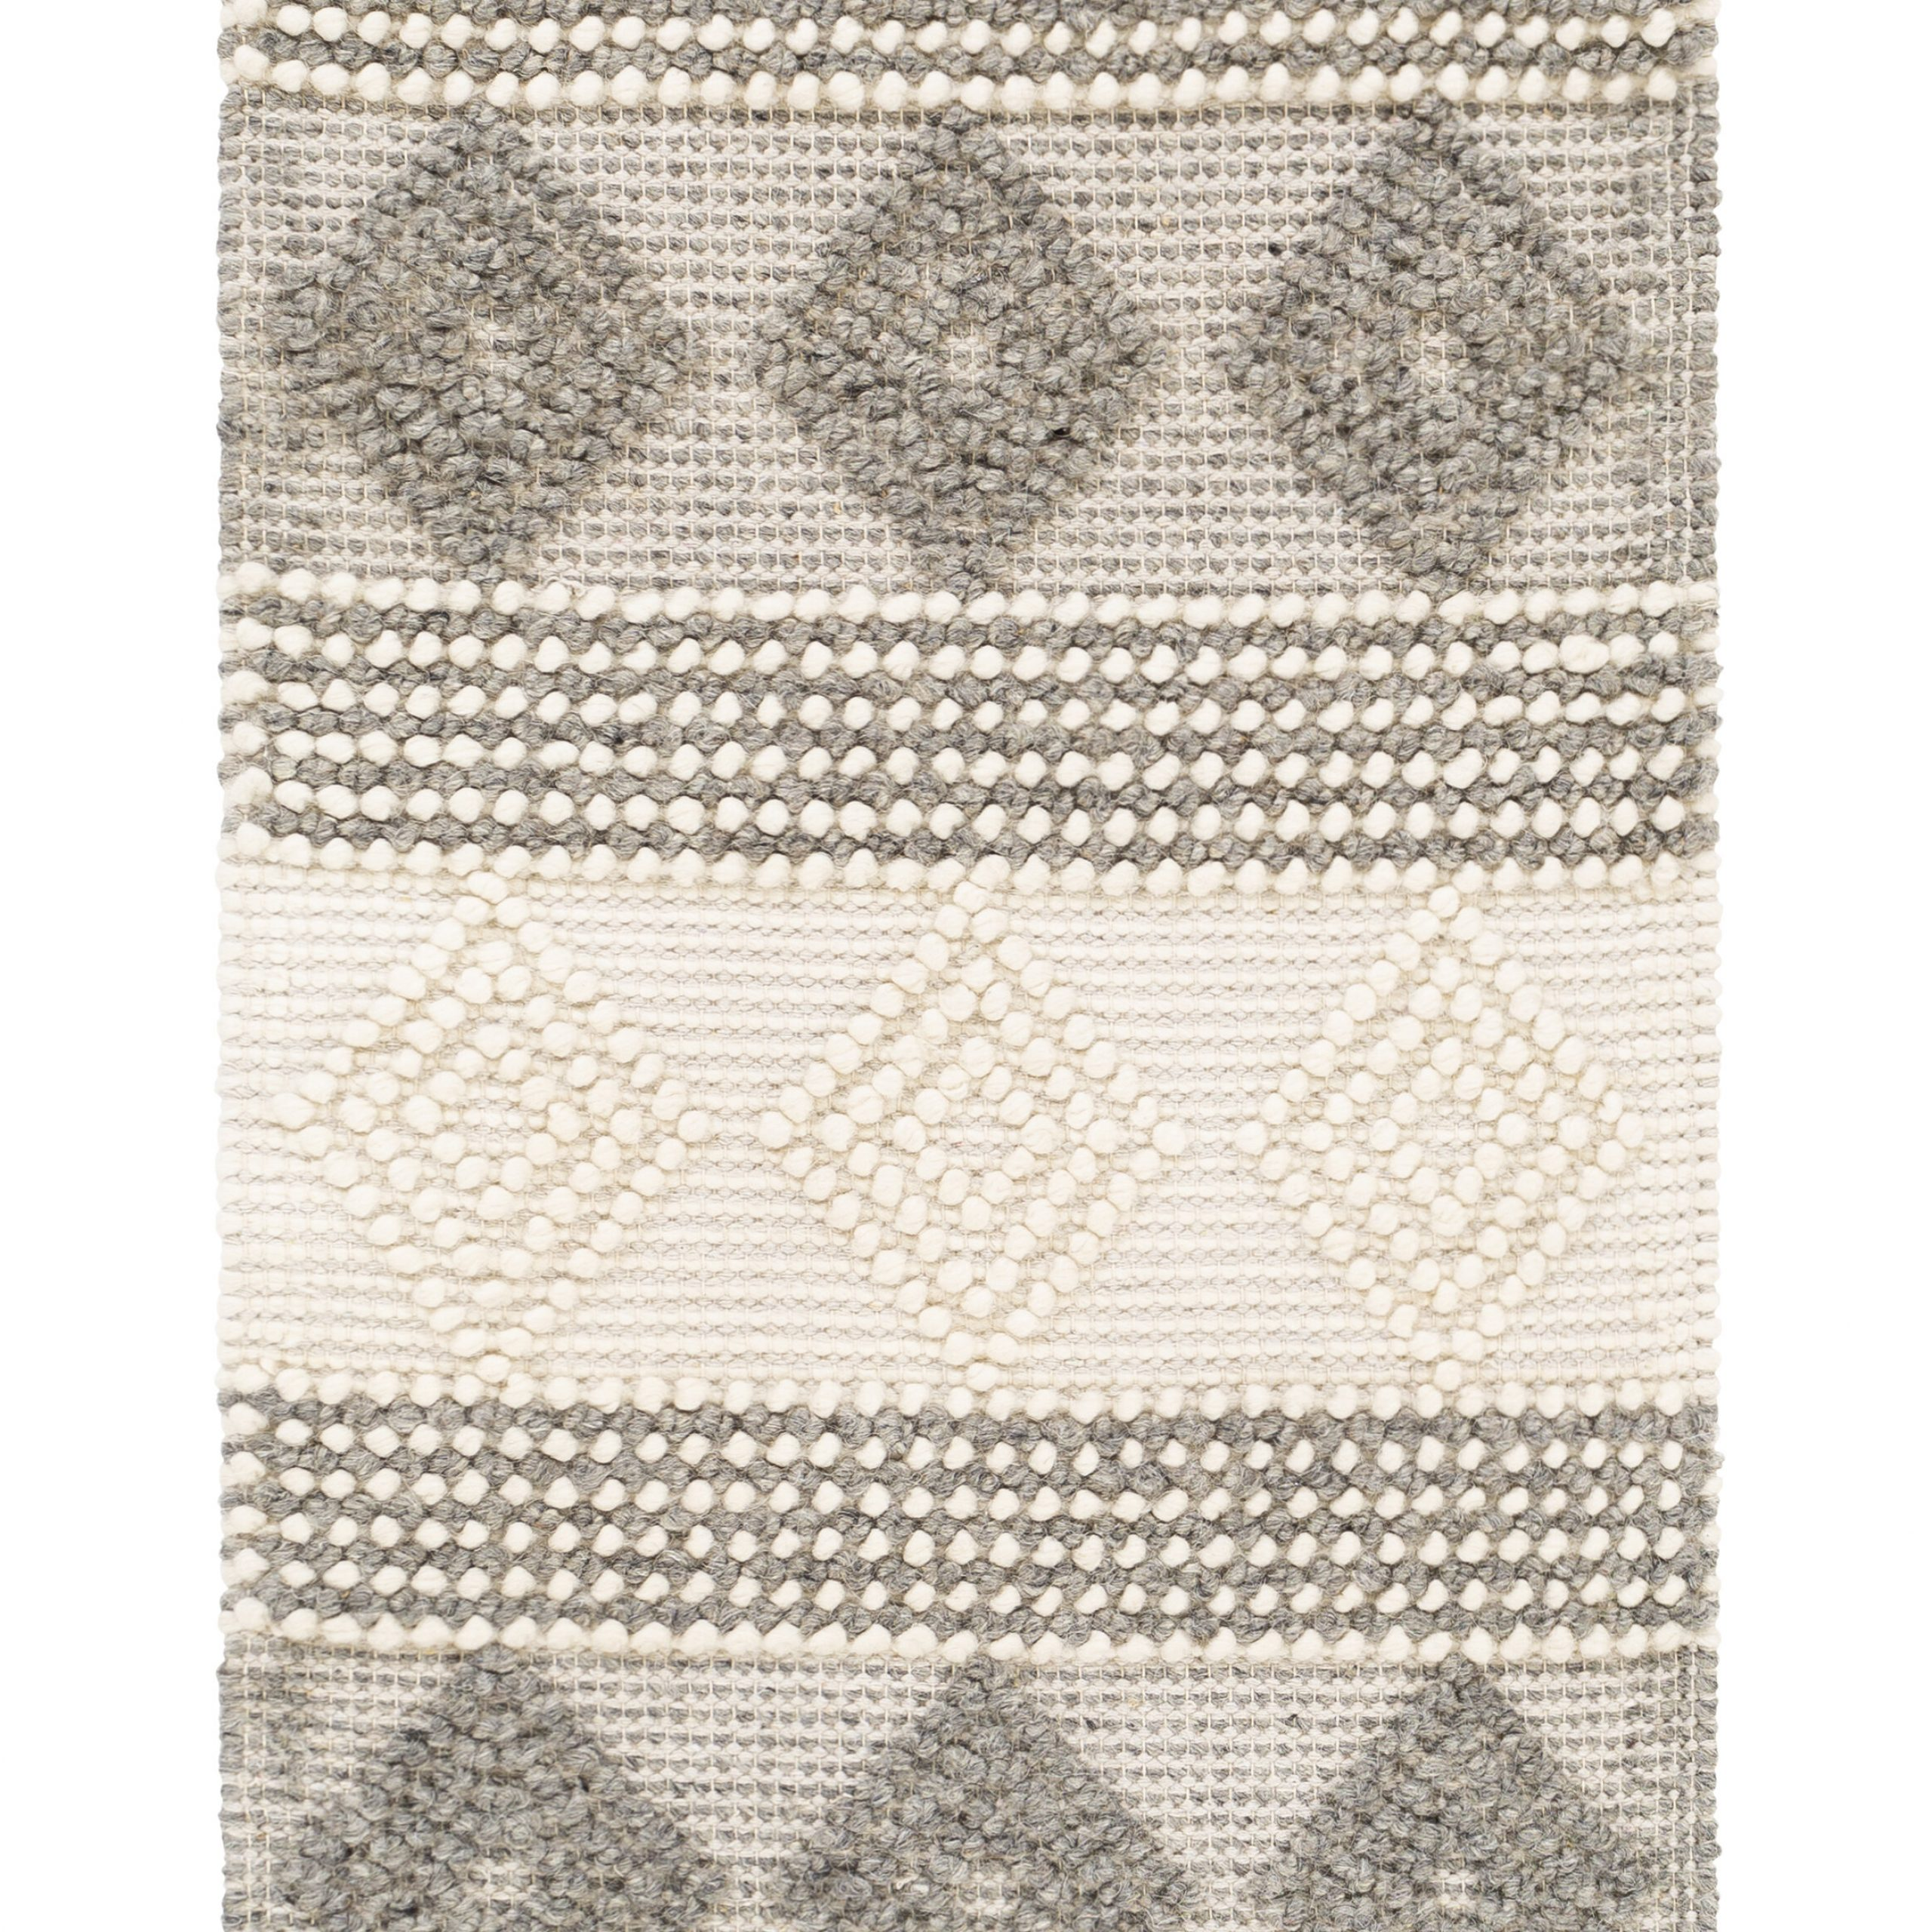 Featured Photo of Blended Fabric Clancy Wool and Cotton Wall Hangings with Hanging Accessories Included